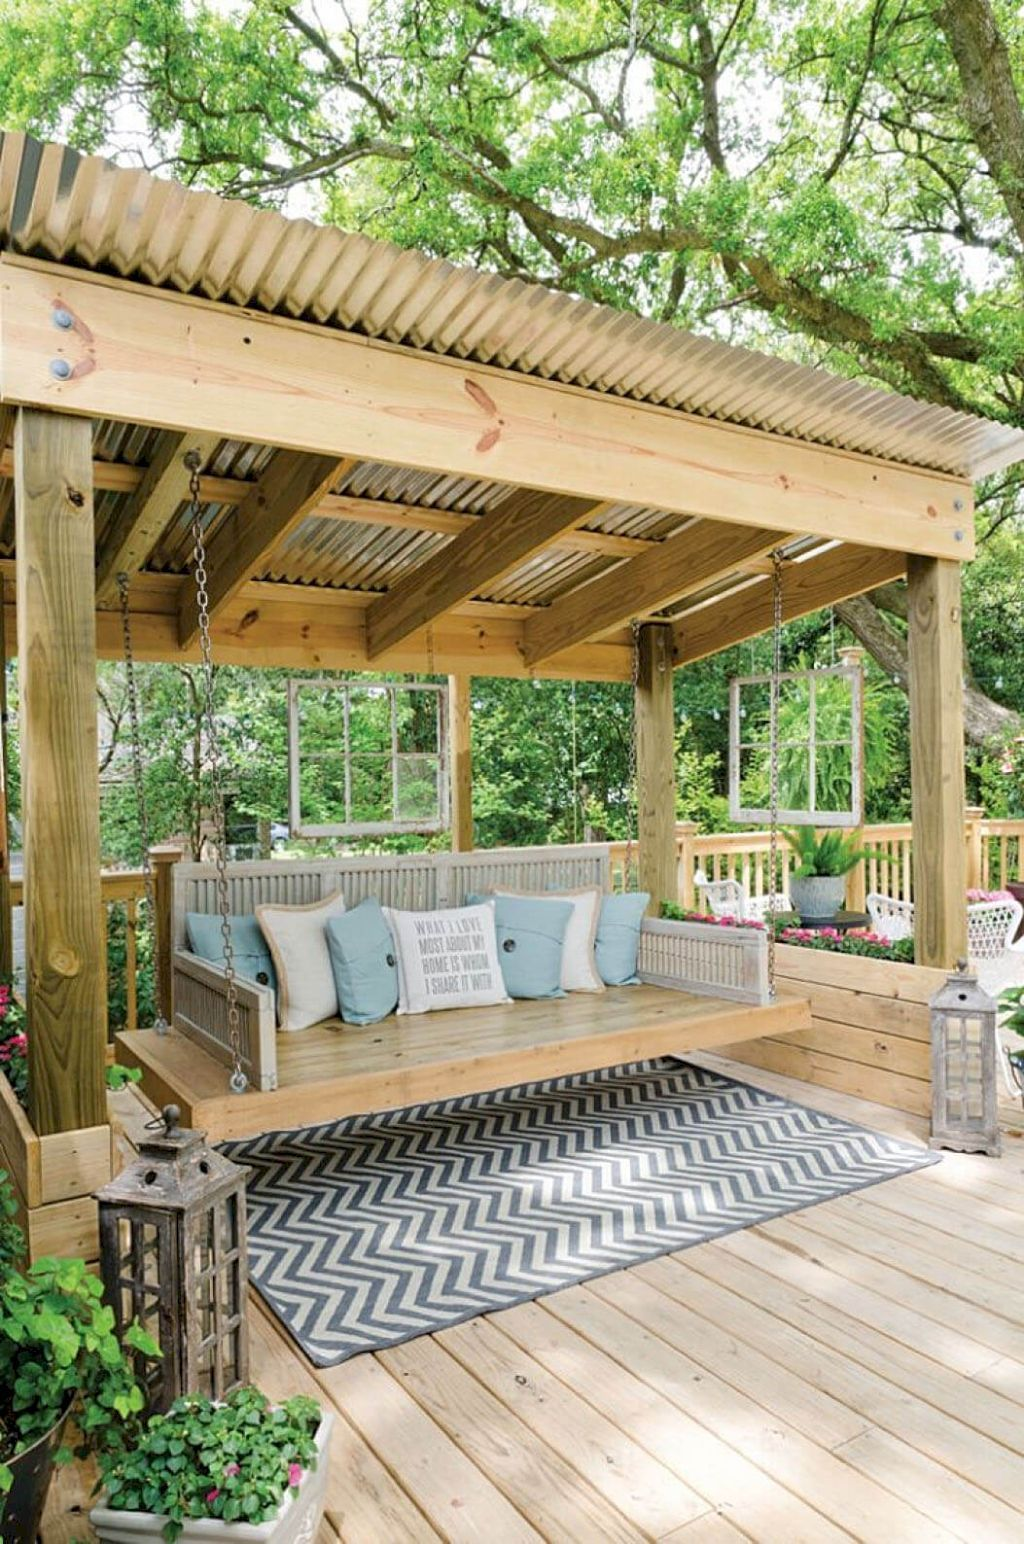 Adorable 40 Beautiful Backyard Patio Design Ideas https://homeideas ...